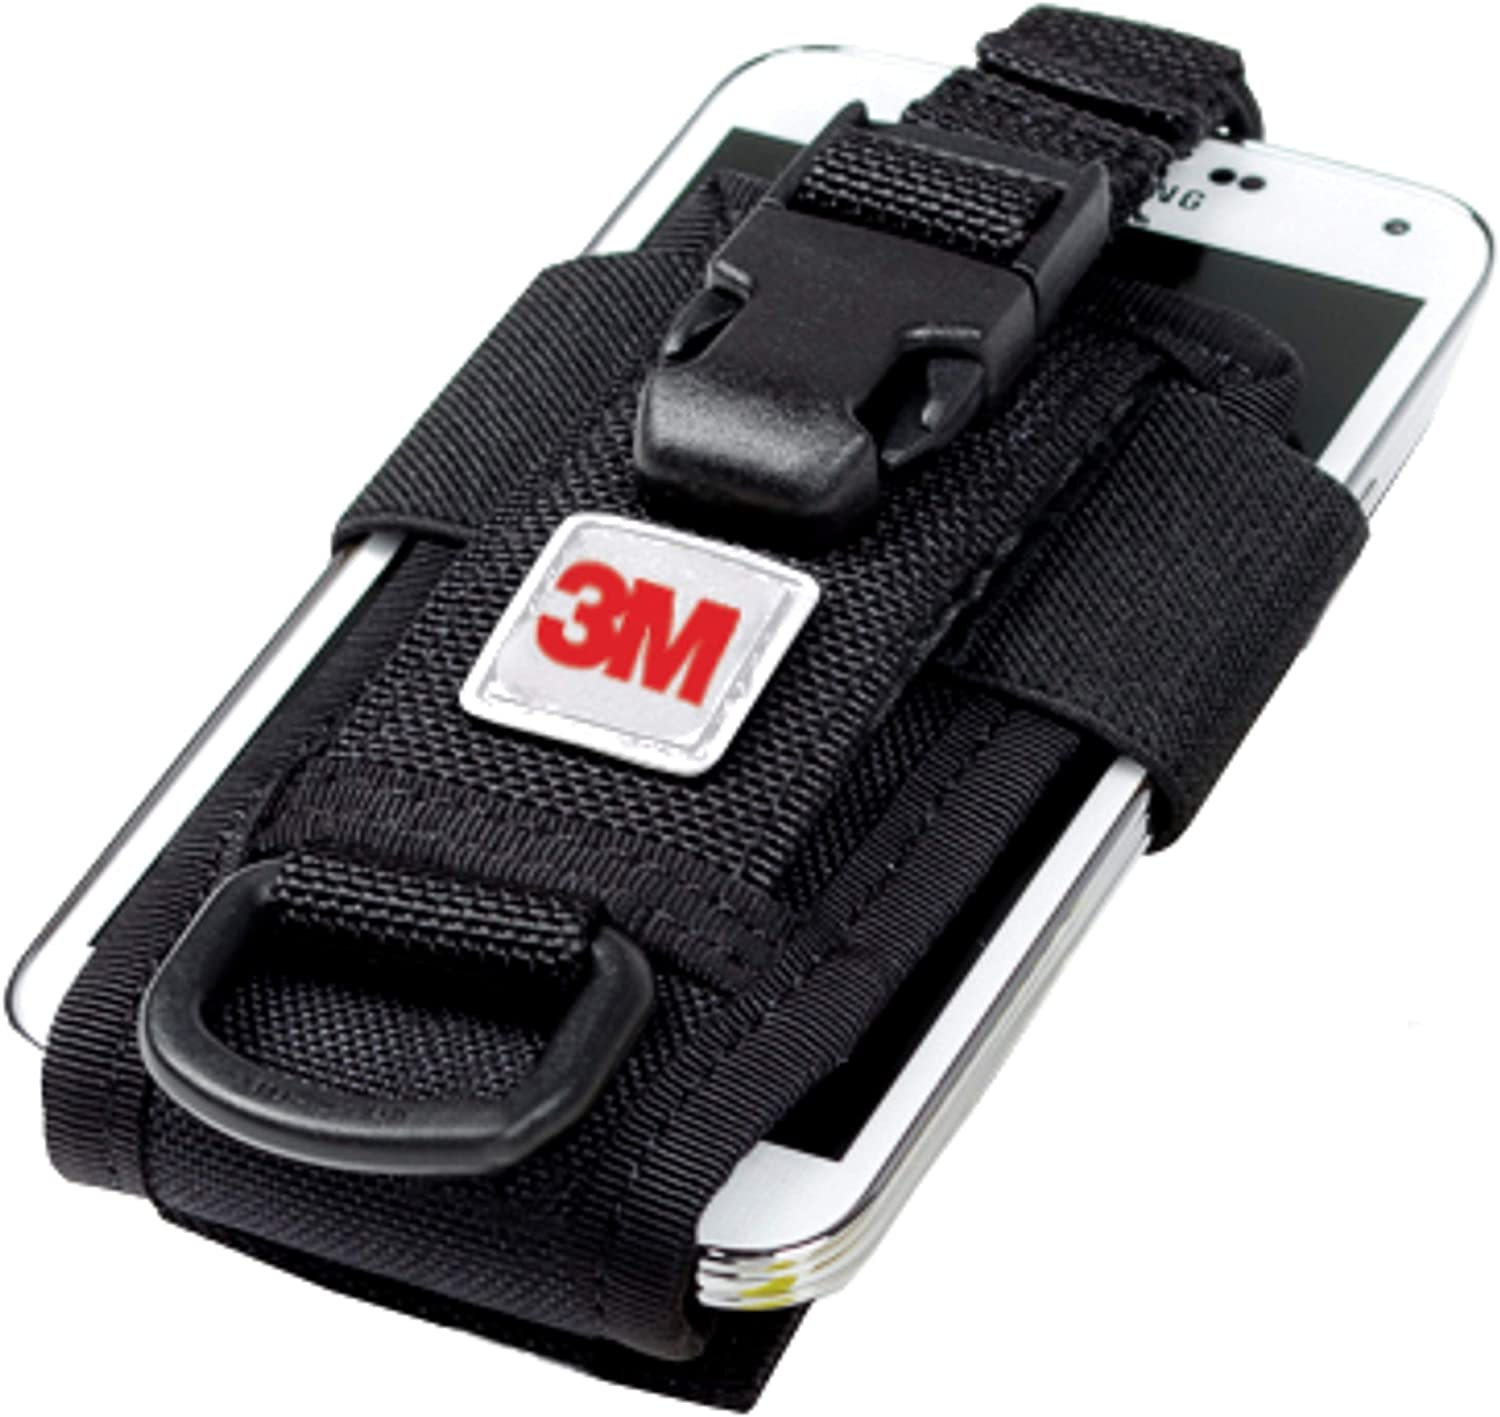 ,Mount To Harnesses//Belts Adjusts To Any Portable Radio//Small Devices 3M DBI-SALA Fall Protection For Tools,1500088,Adj Radio Holster Cell Phones//Cameras Renewed